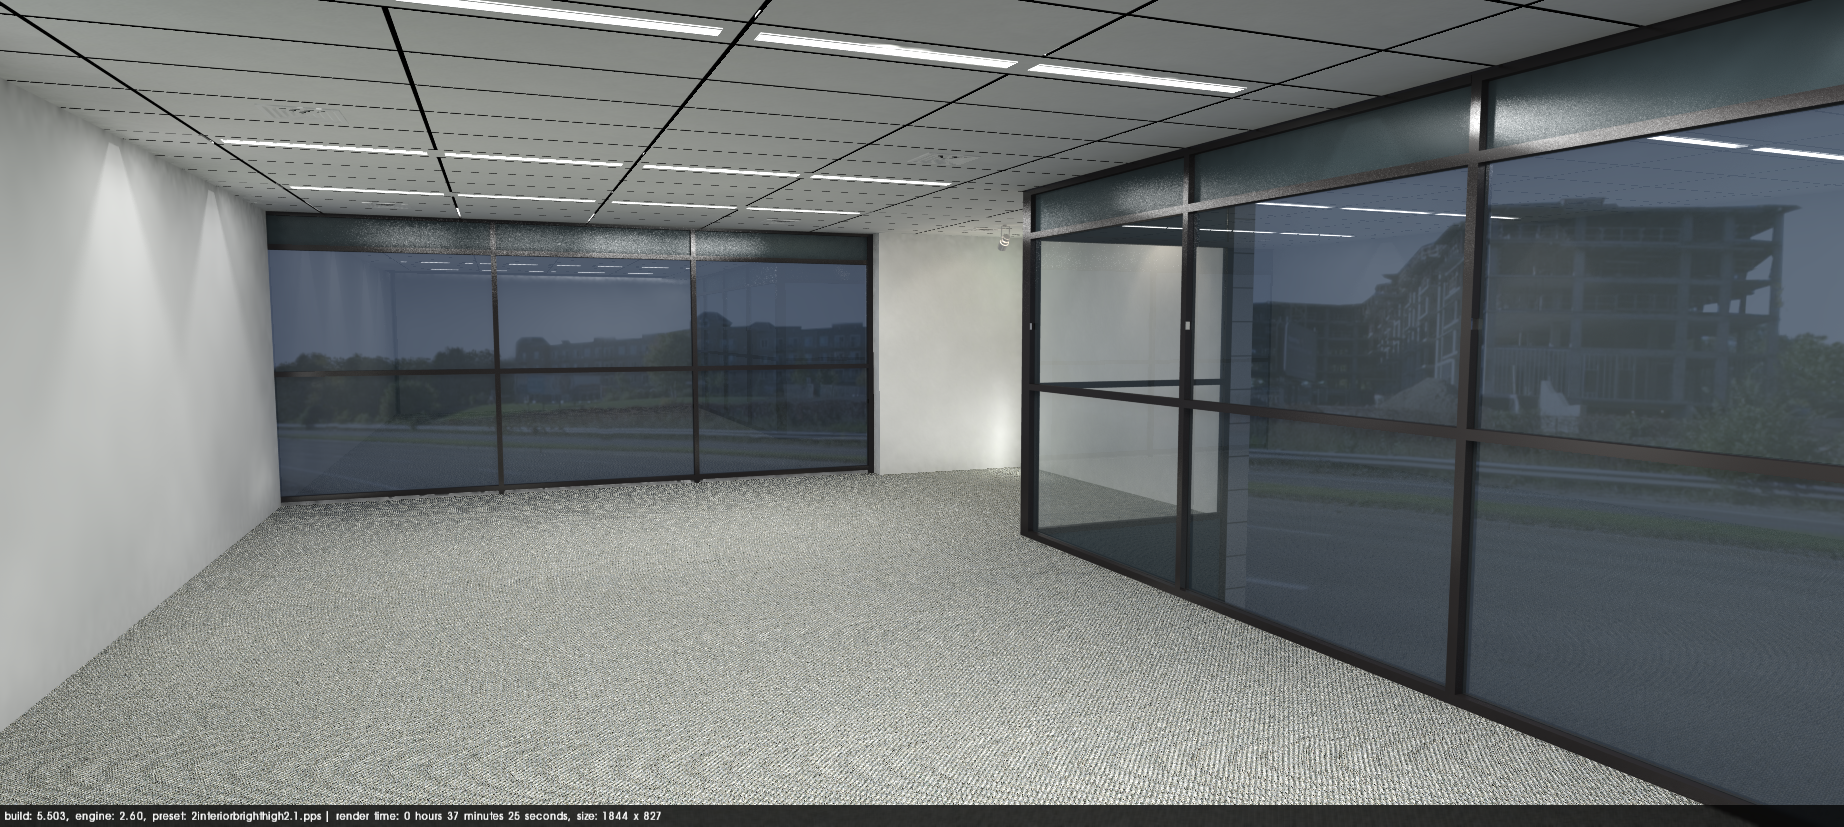 Interieur-office-v6-no-exterior-orglights-empty 2018-10-31 15204400000.png